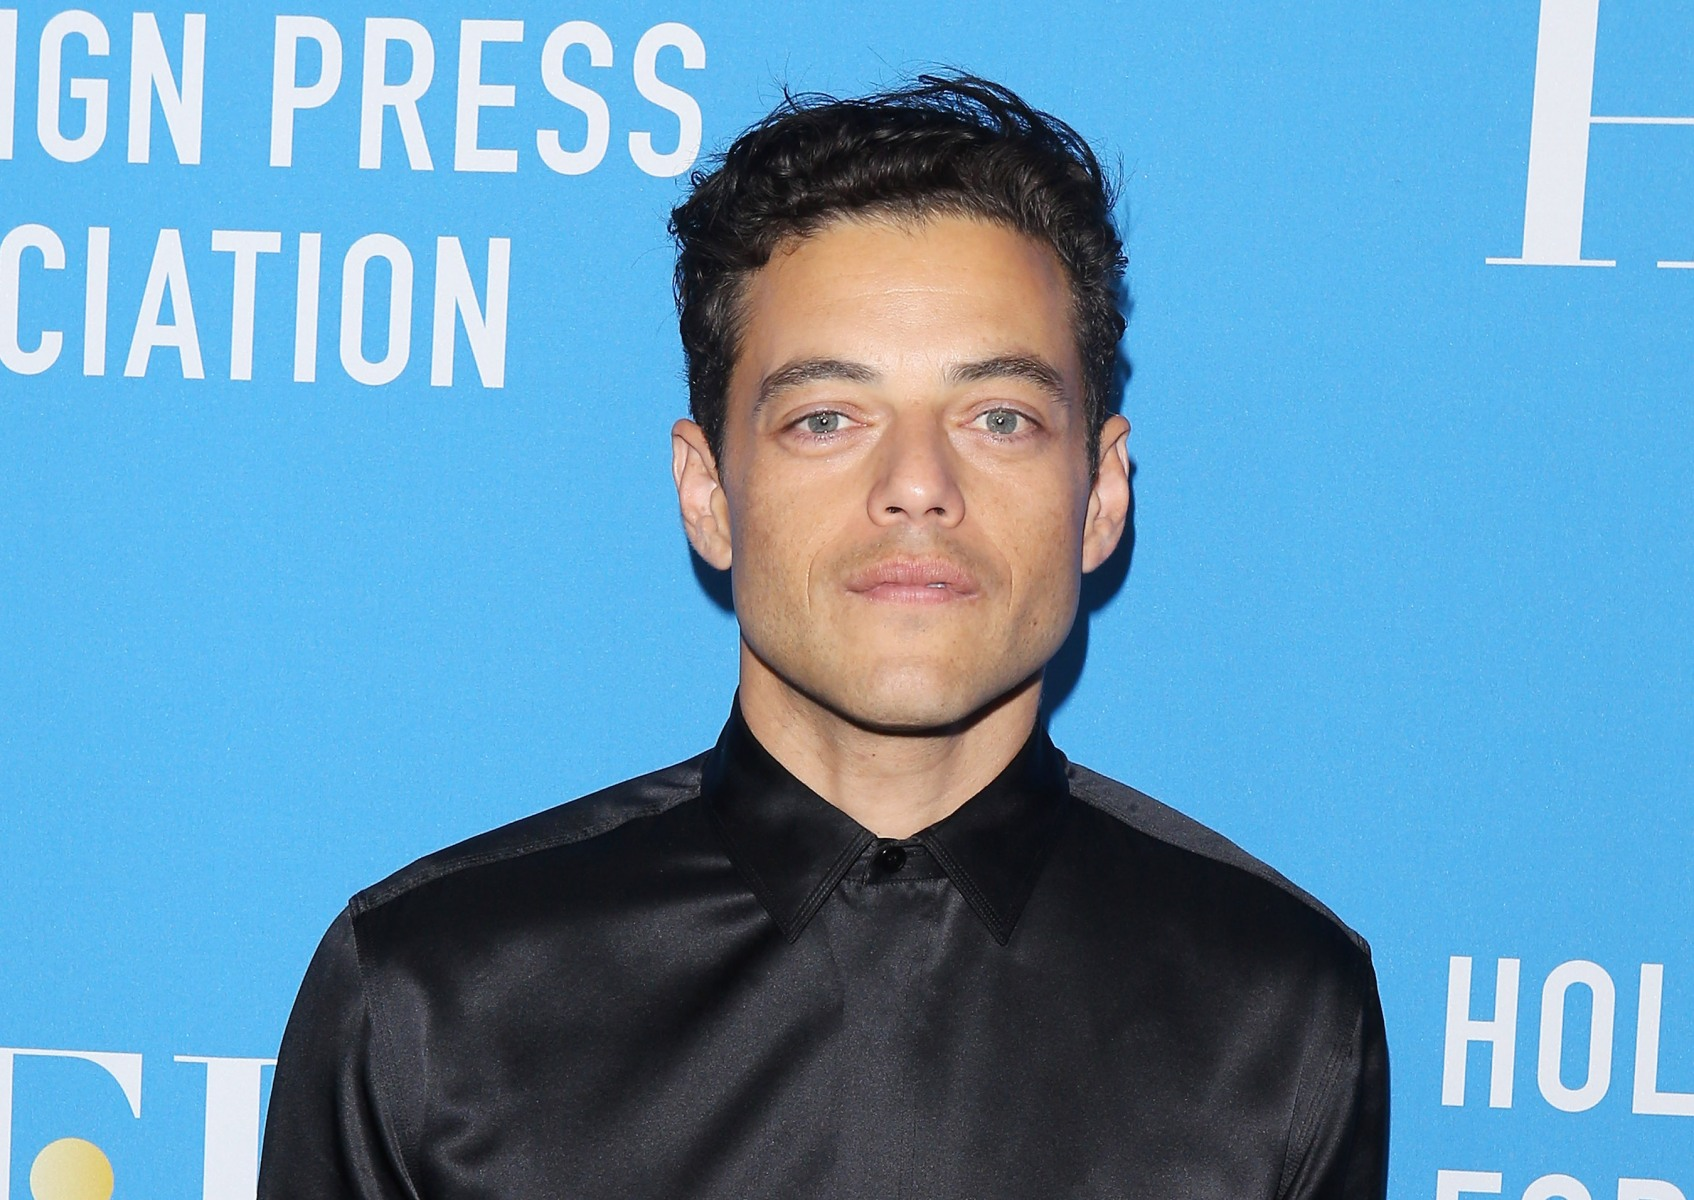 Rami Malek attends the Hollywood Foreign Press Association's Grants Banquet held at The Beverly Hilton Hotel on August 9, 2018 in Beverly Hills, California.  (Photo by Michael Tran/FilmMagic)